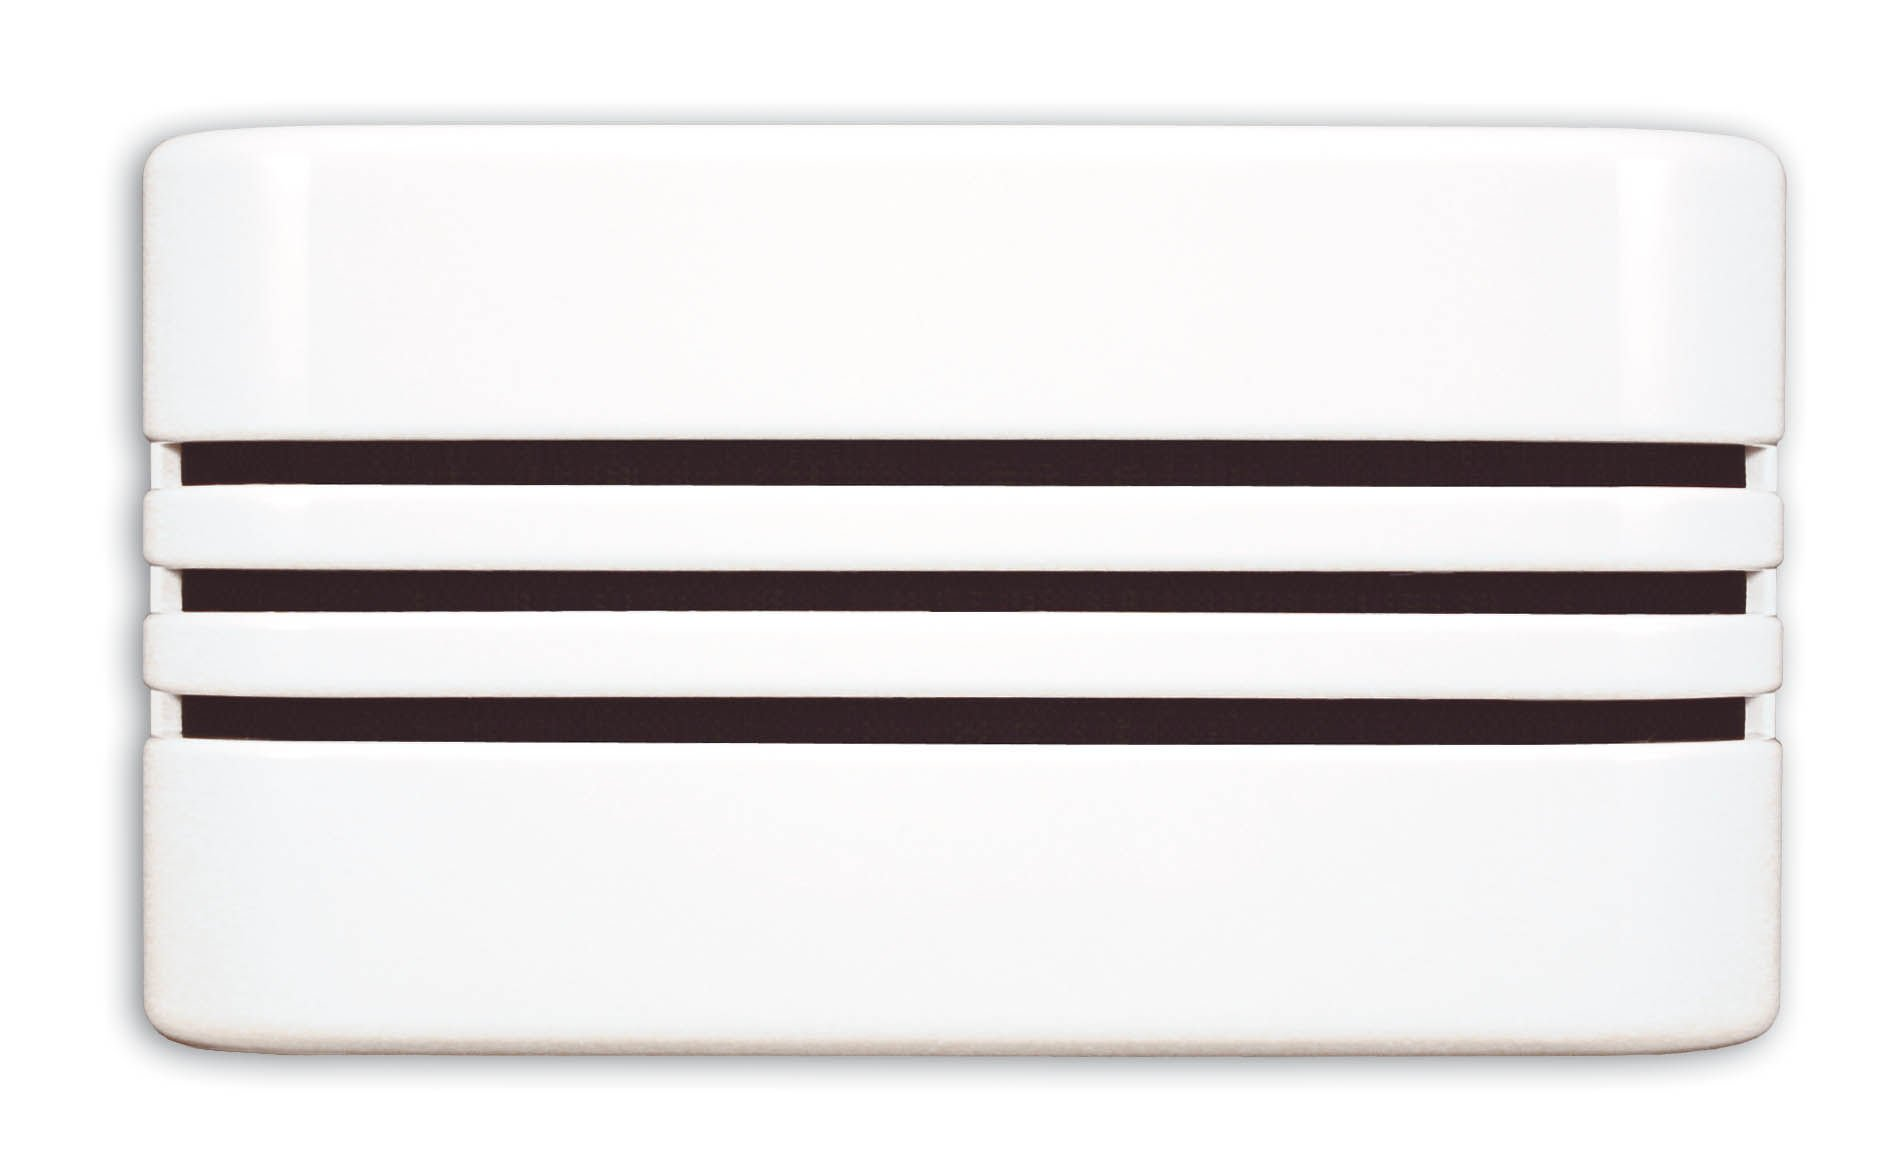 Heath Zenith 57/M Wired Door Chime with Decorative Linear Cover, White